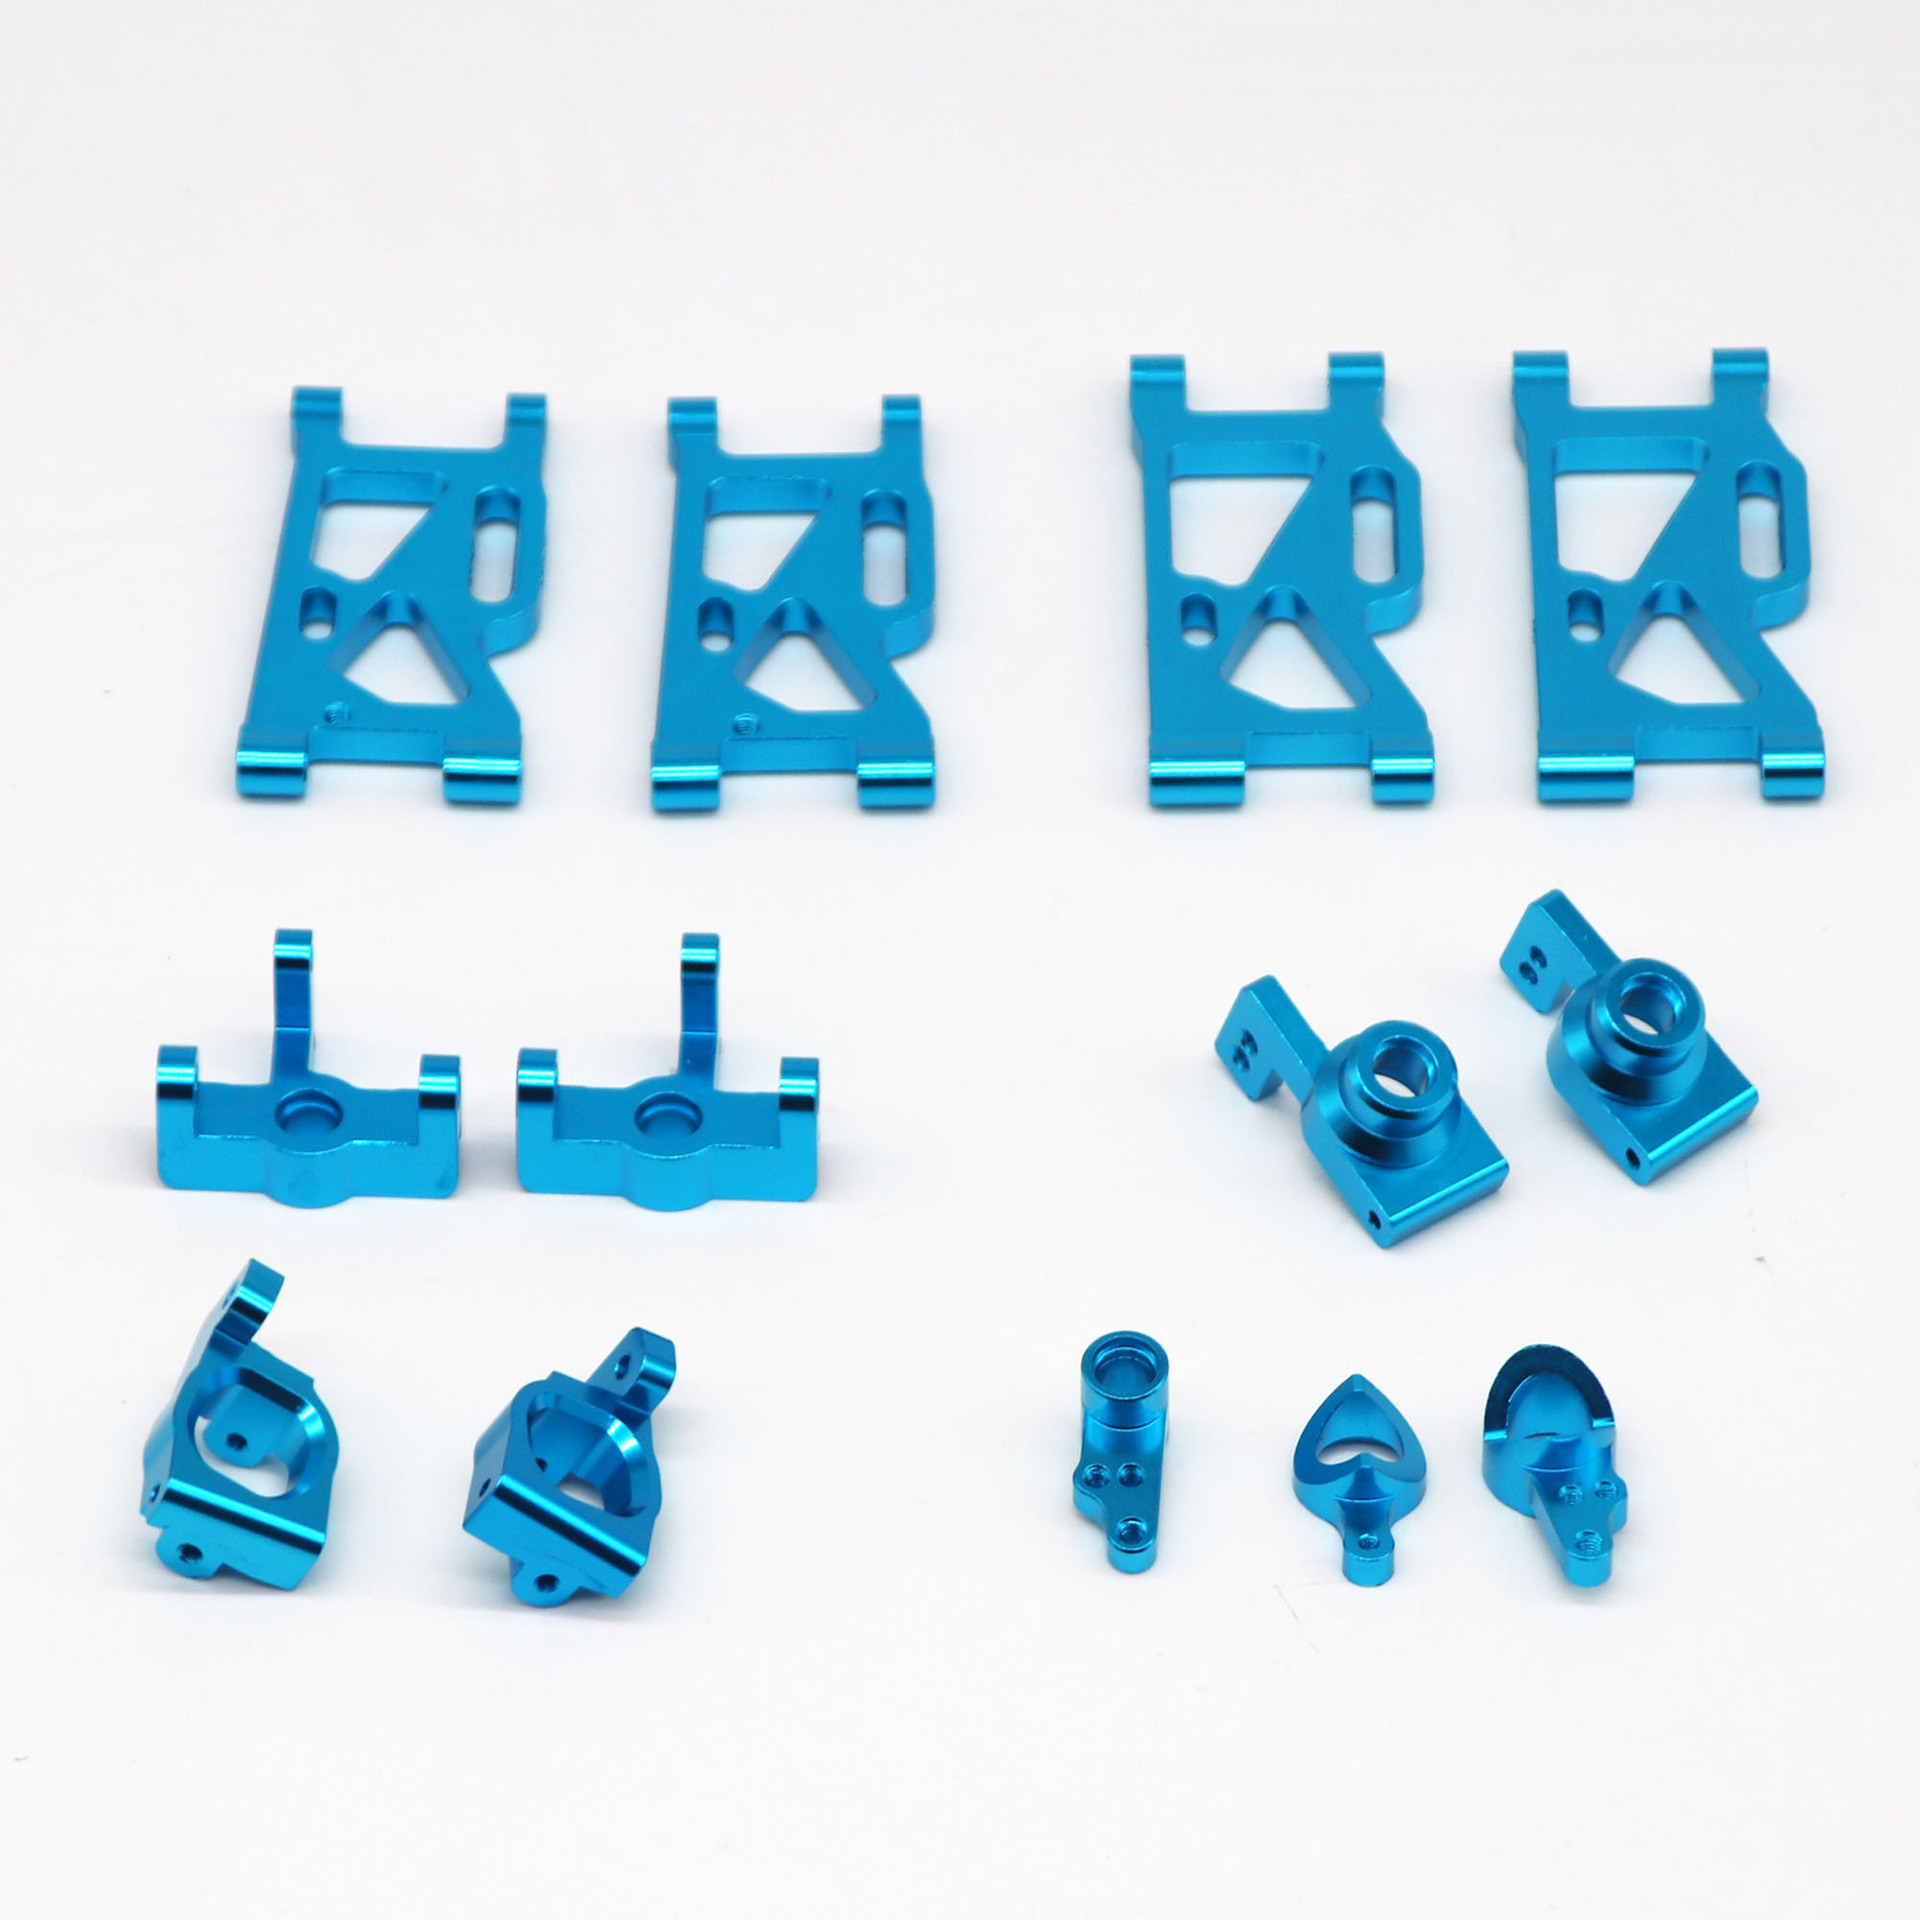 13Pcs/set Metal Front Rear Wheel Seat Base C Swing Arm Steering Clutch Component for WLtoys 144001 1/14 RC Car Upgrade Spare Parts blue_13PCS